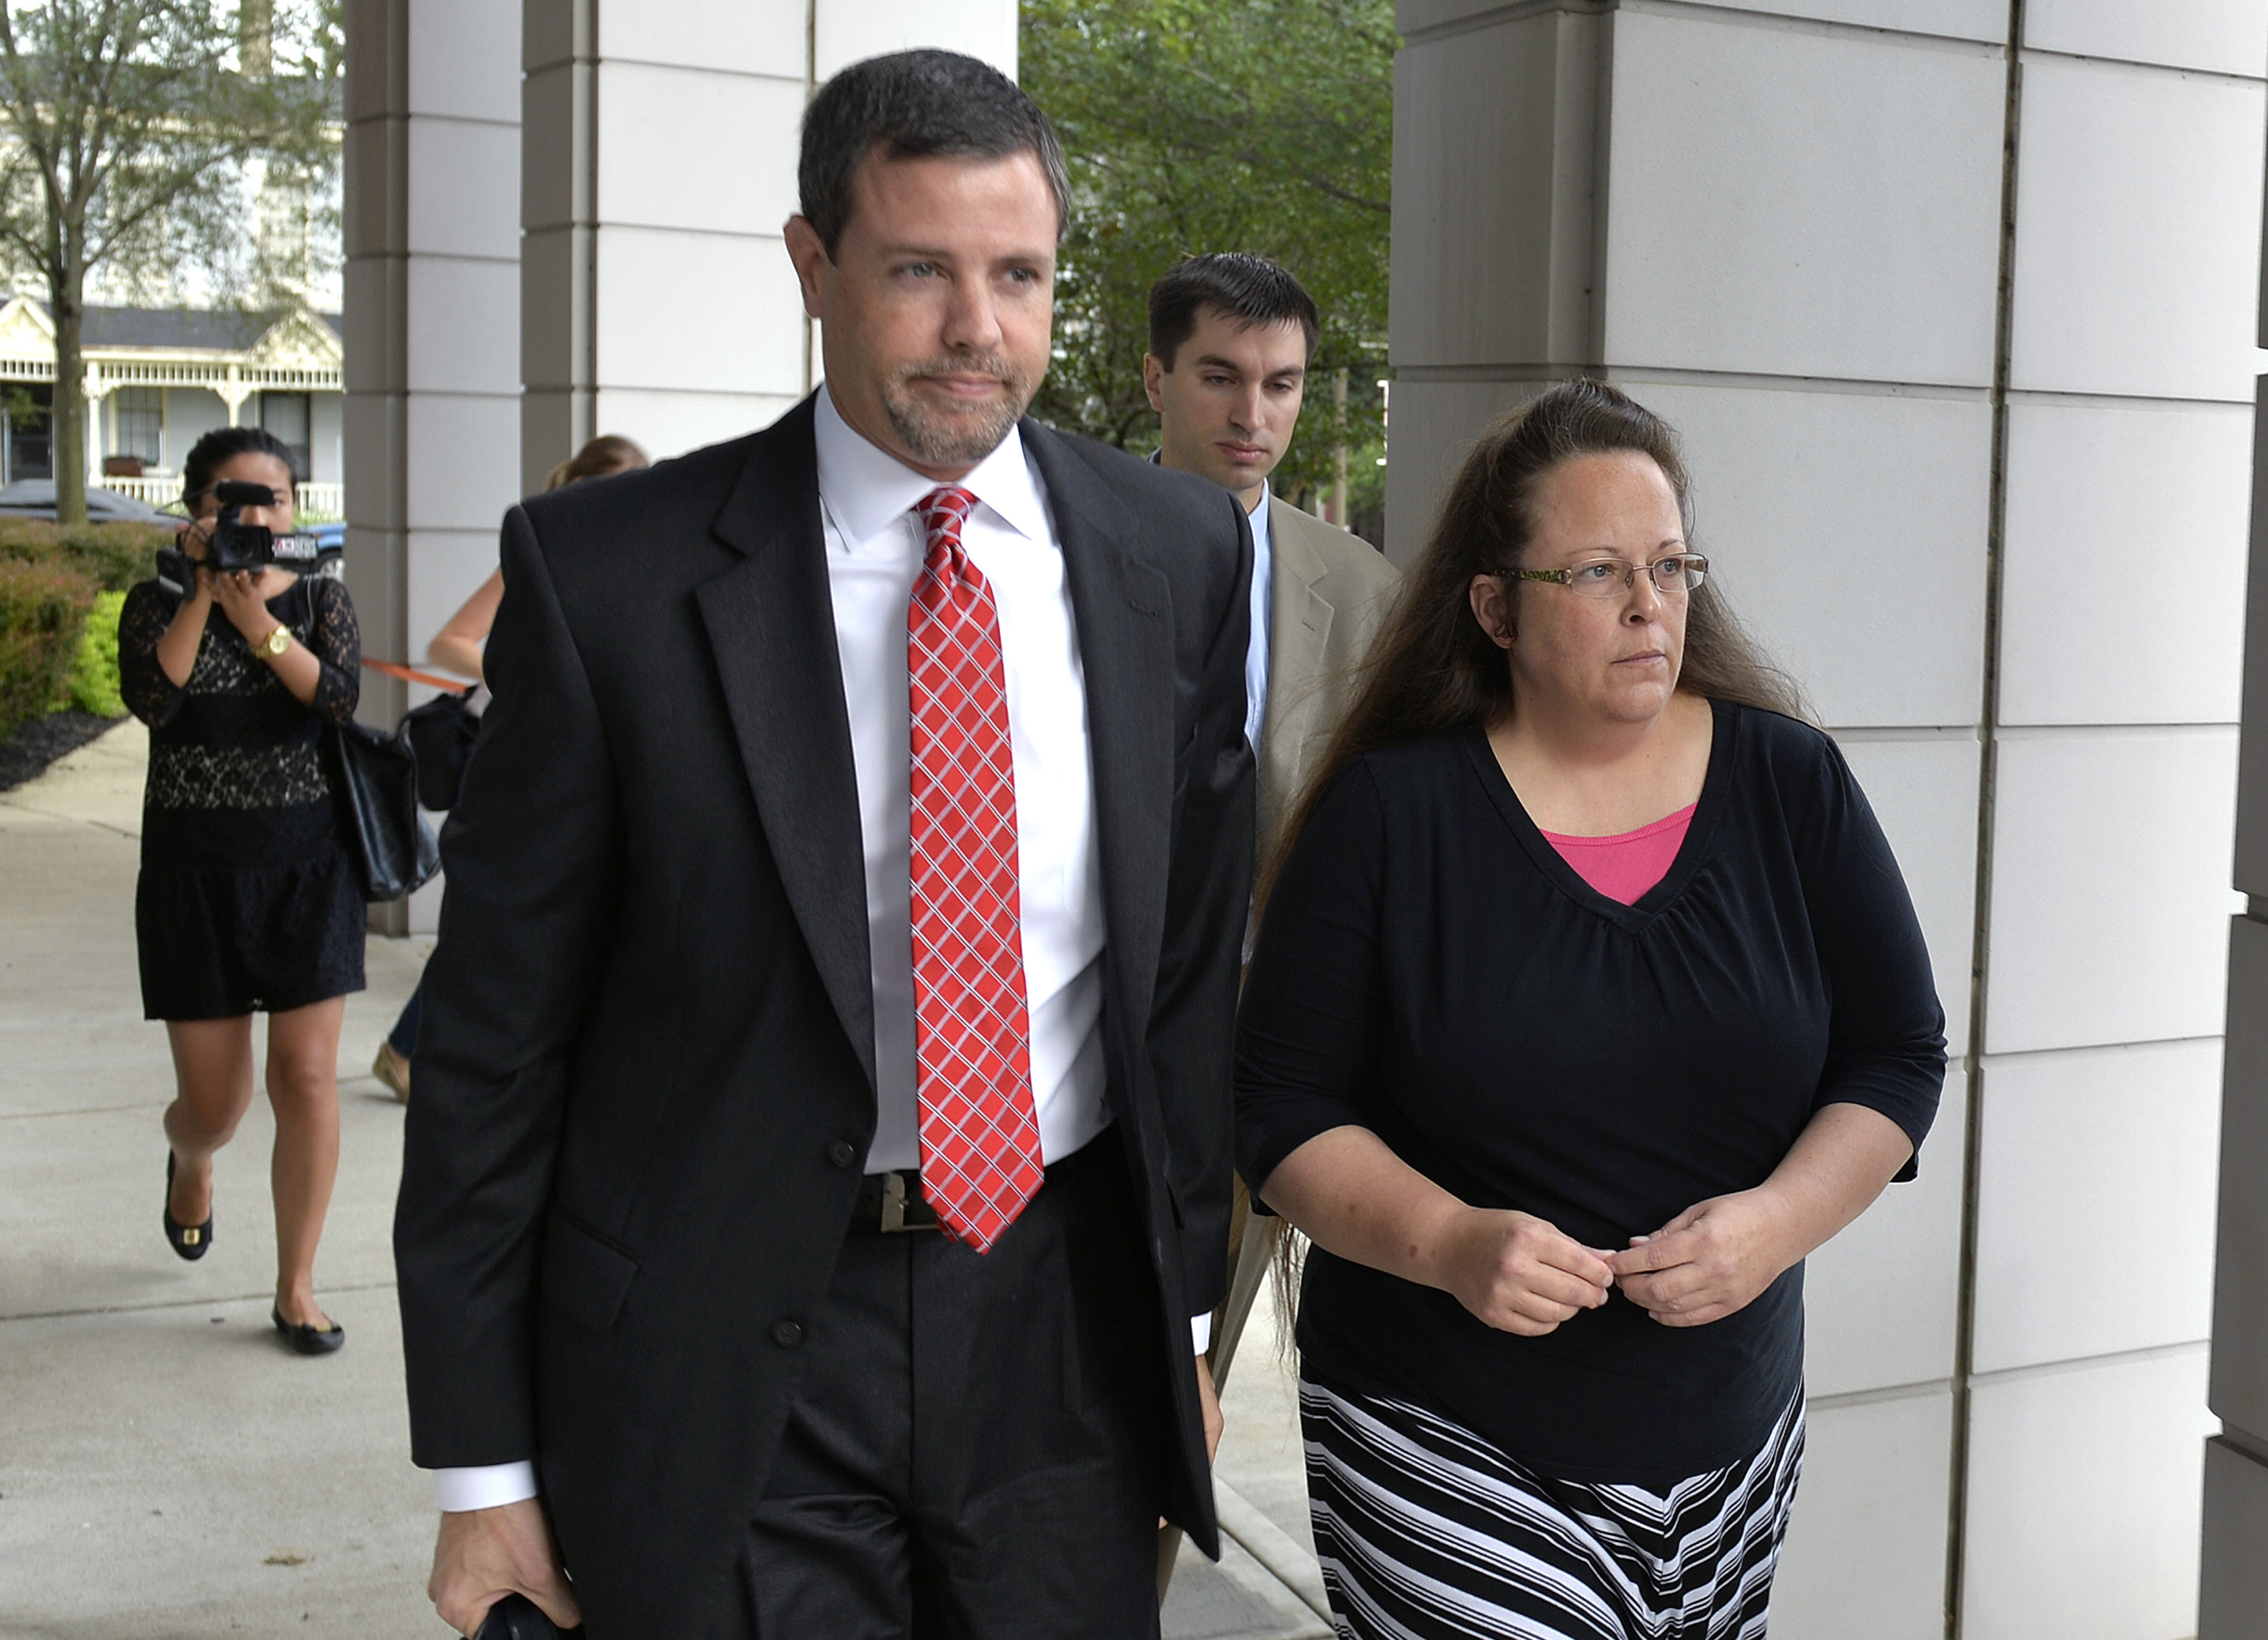 In this July 20, 2015 file photo, Rowan County Clerk Kim Davis, right, walks with her attorney Roger Gannam into the United States District Court for the Eastern District of Kentucky in Covington, Ky. The Rowan County, Ky., clerk's office turned away gay couples who sought marriage licenses on Thursday, Aug. 13, 2015, defying a federal judge's order that said deeply held Christian beliefs don't excuse officials from following the law. The fight in Rowan County began soon after the Supreme Court legalized gay marriage nationwide in June. Davis cited her religious beliefs and decided not to issue marriage licenses to any couple, gay or straight. (AP Photo/Timothy D. Easley)